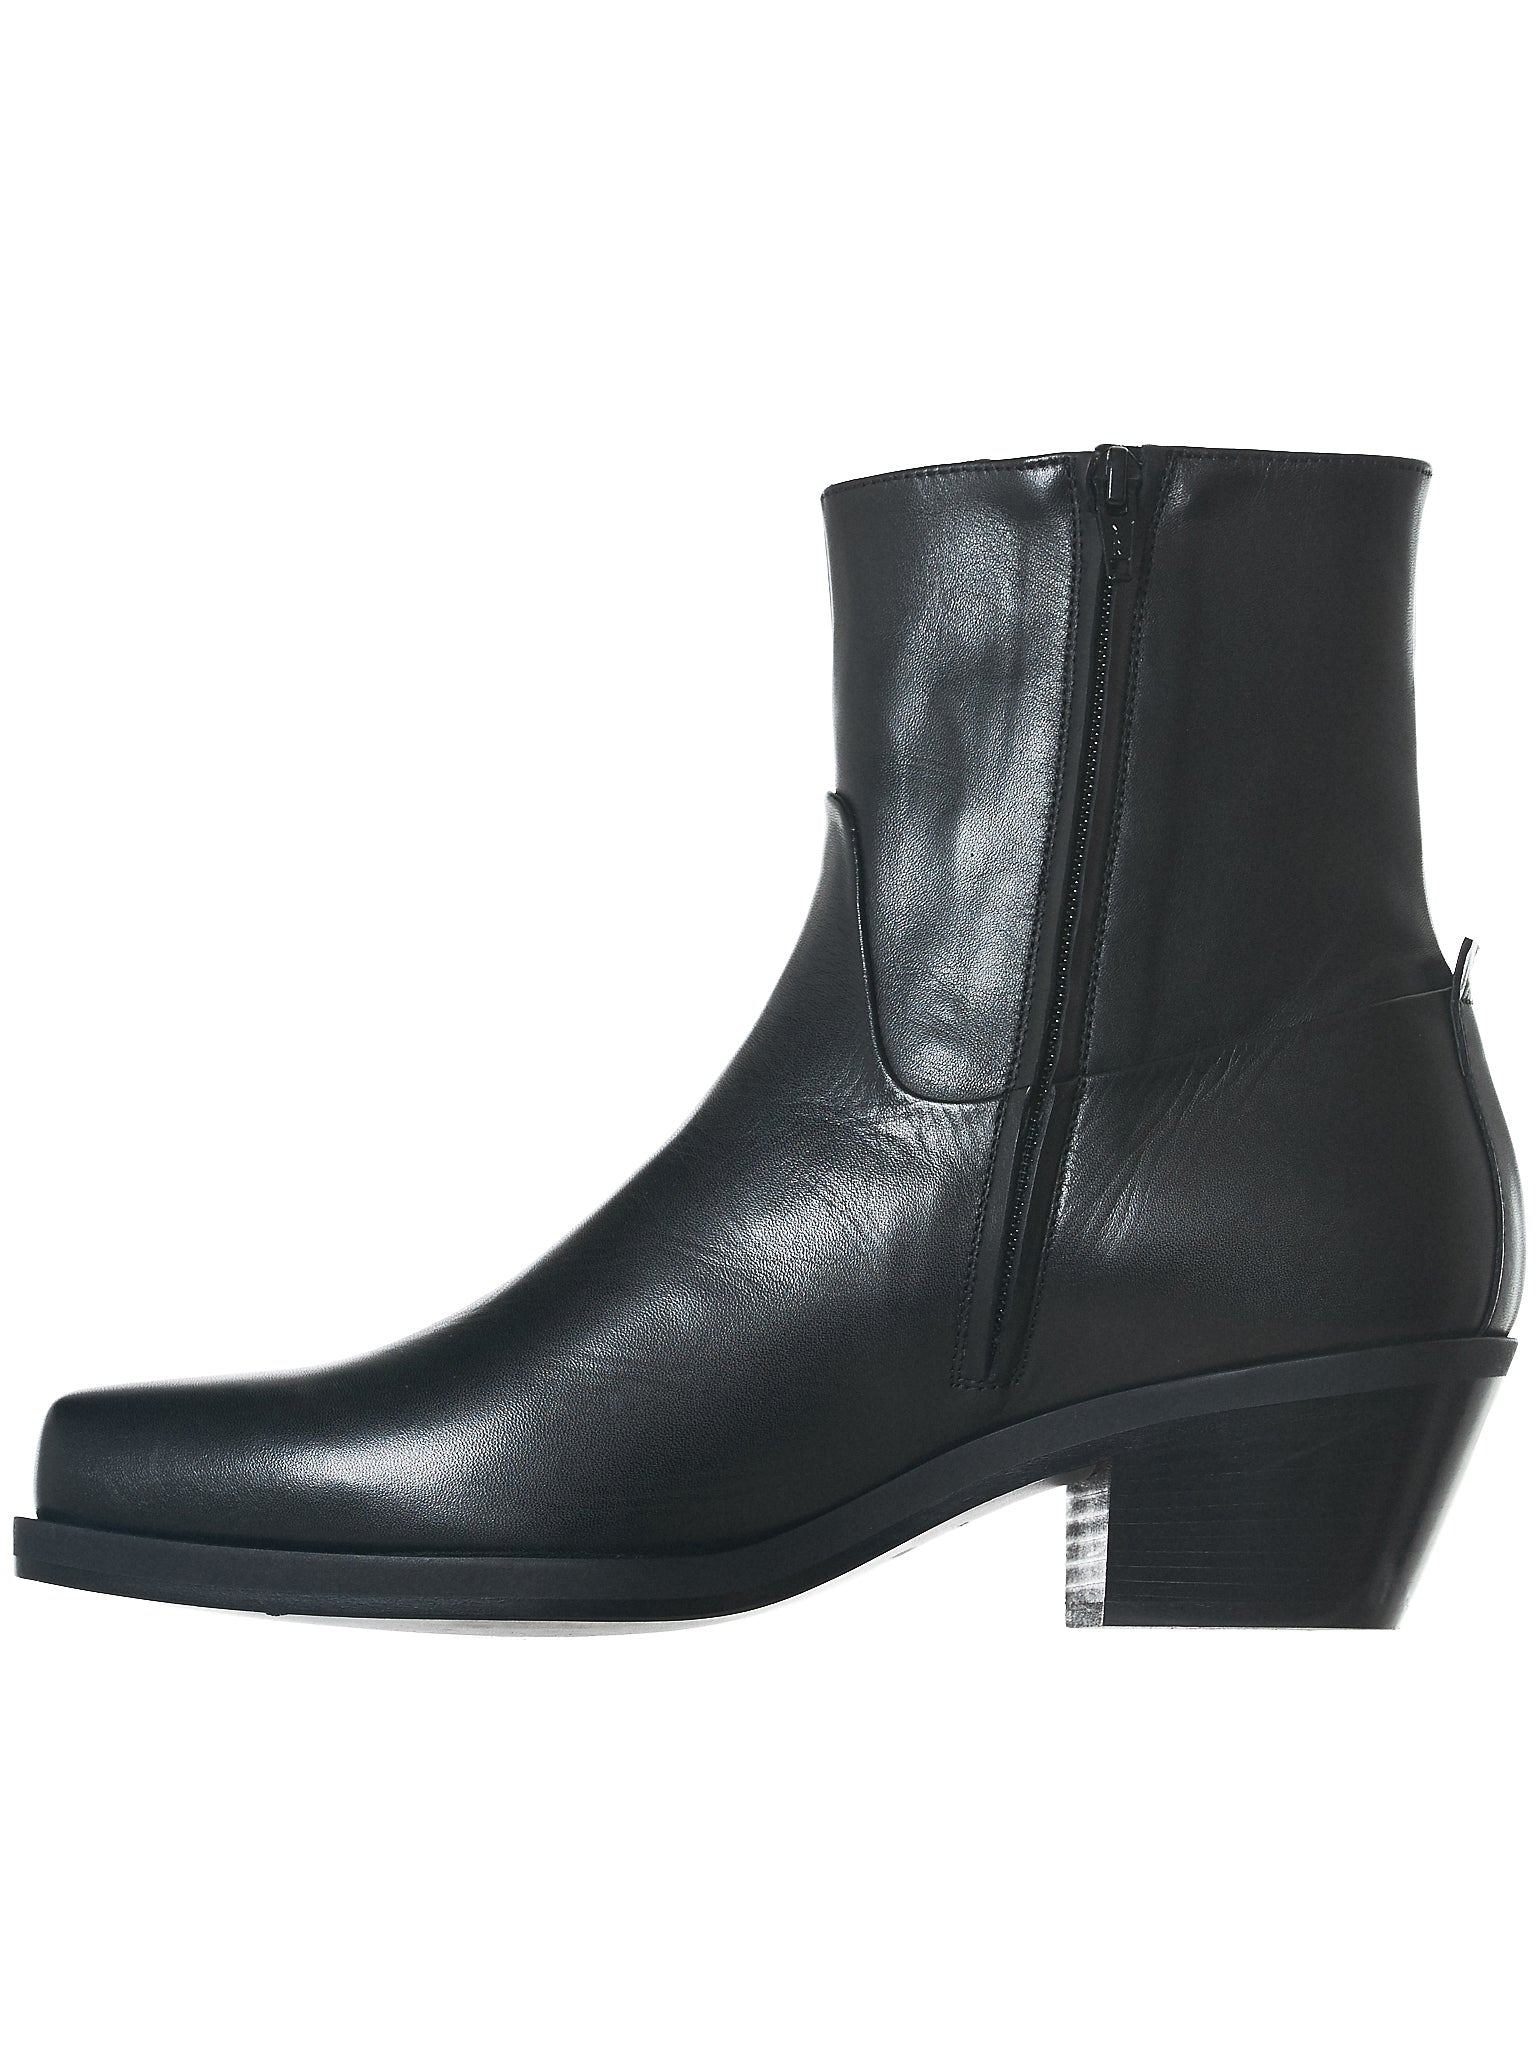 MISBHV Leather Boots - Hlorenzo Back